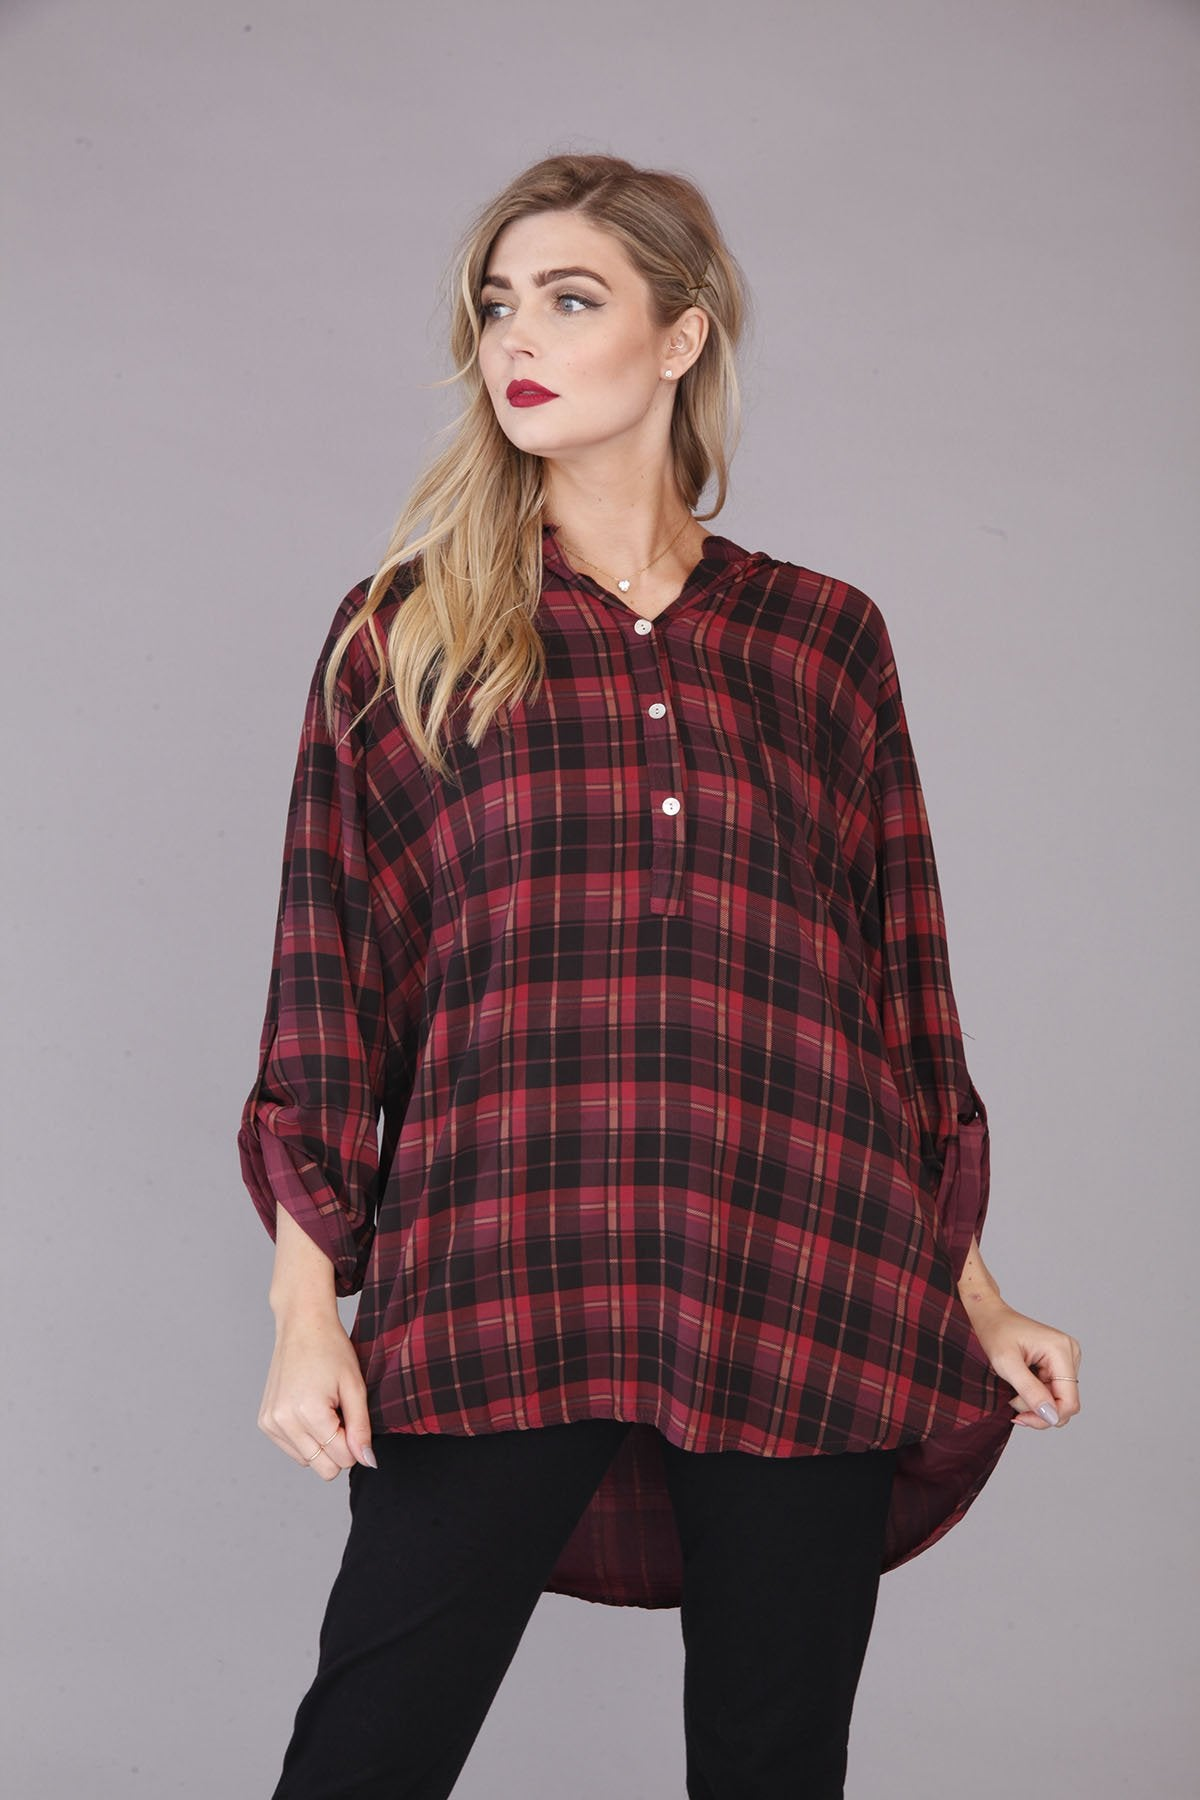 Plum Check Shirt - Goose Island